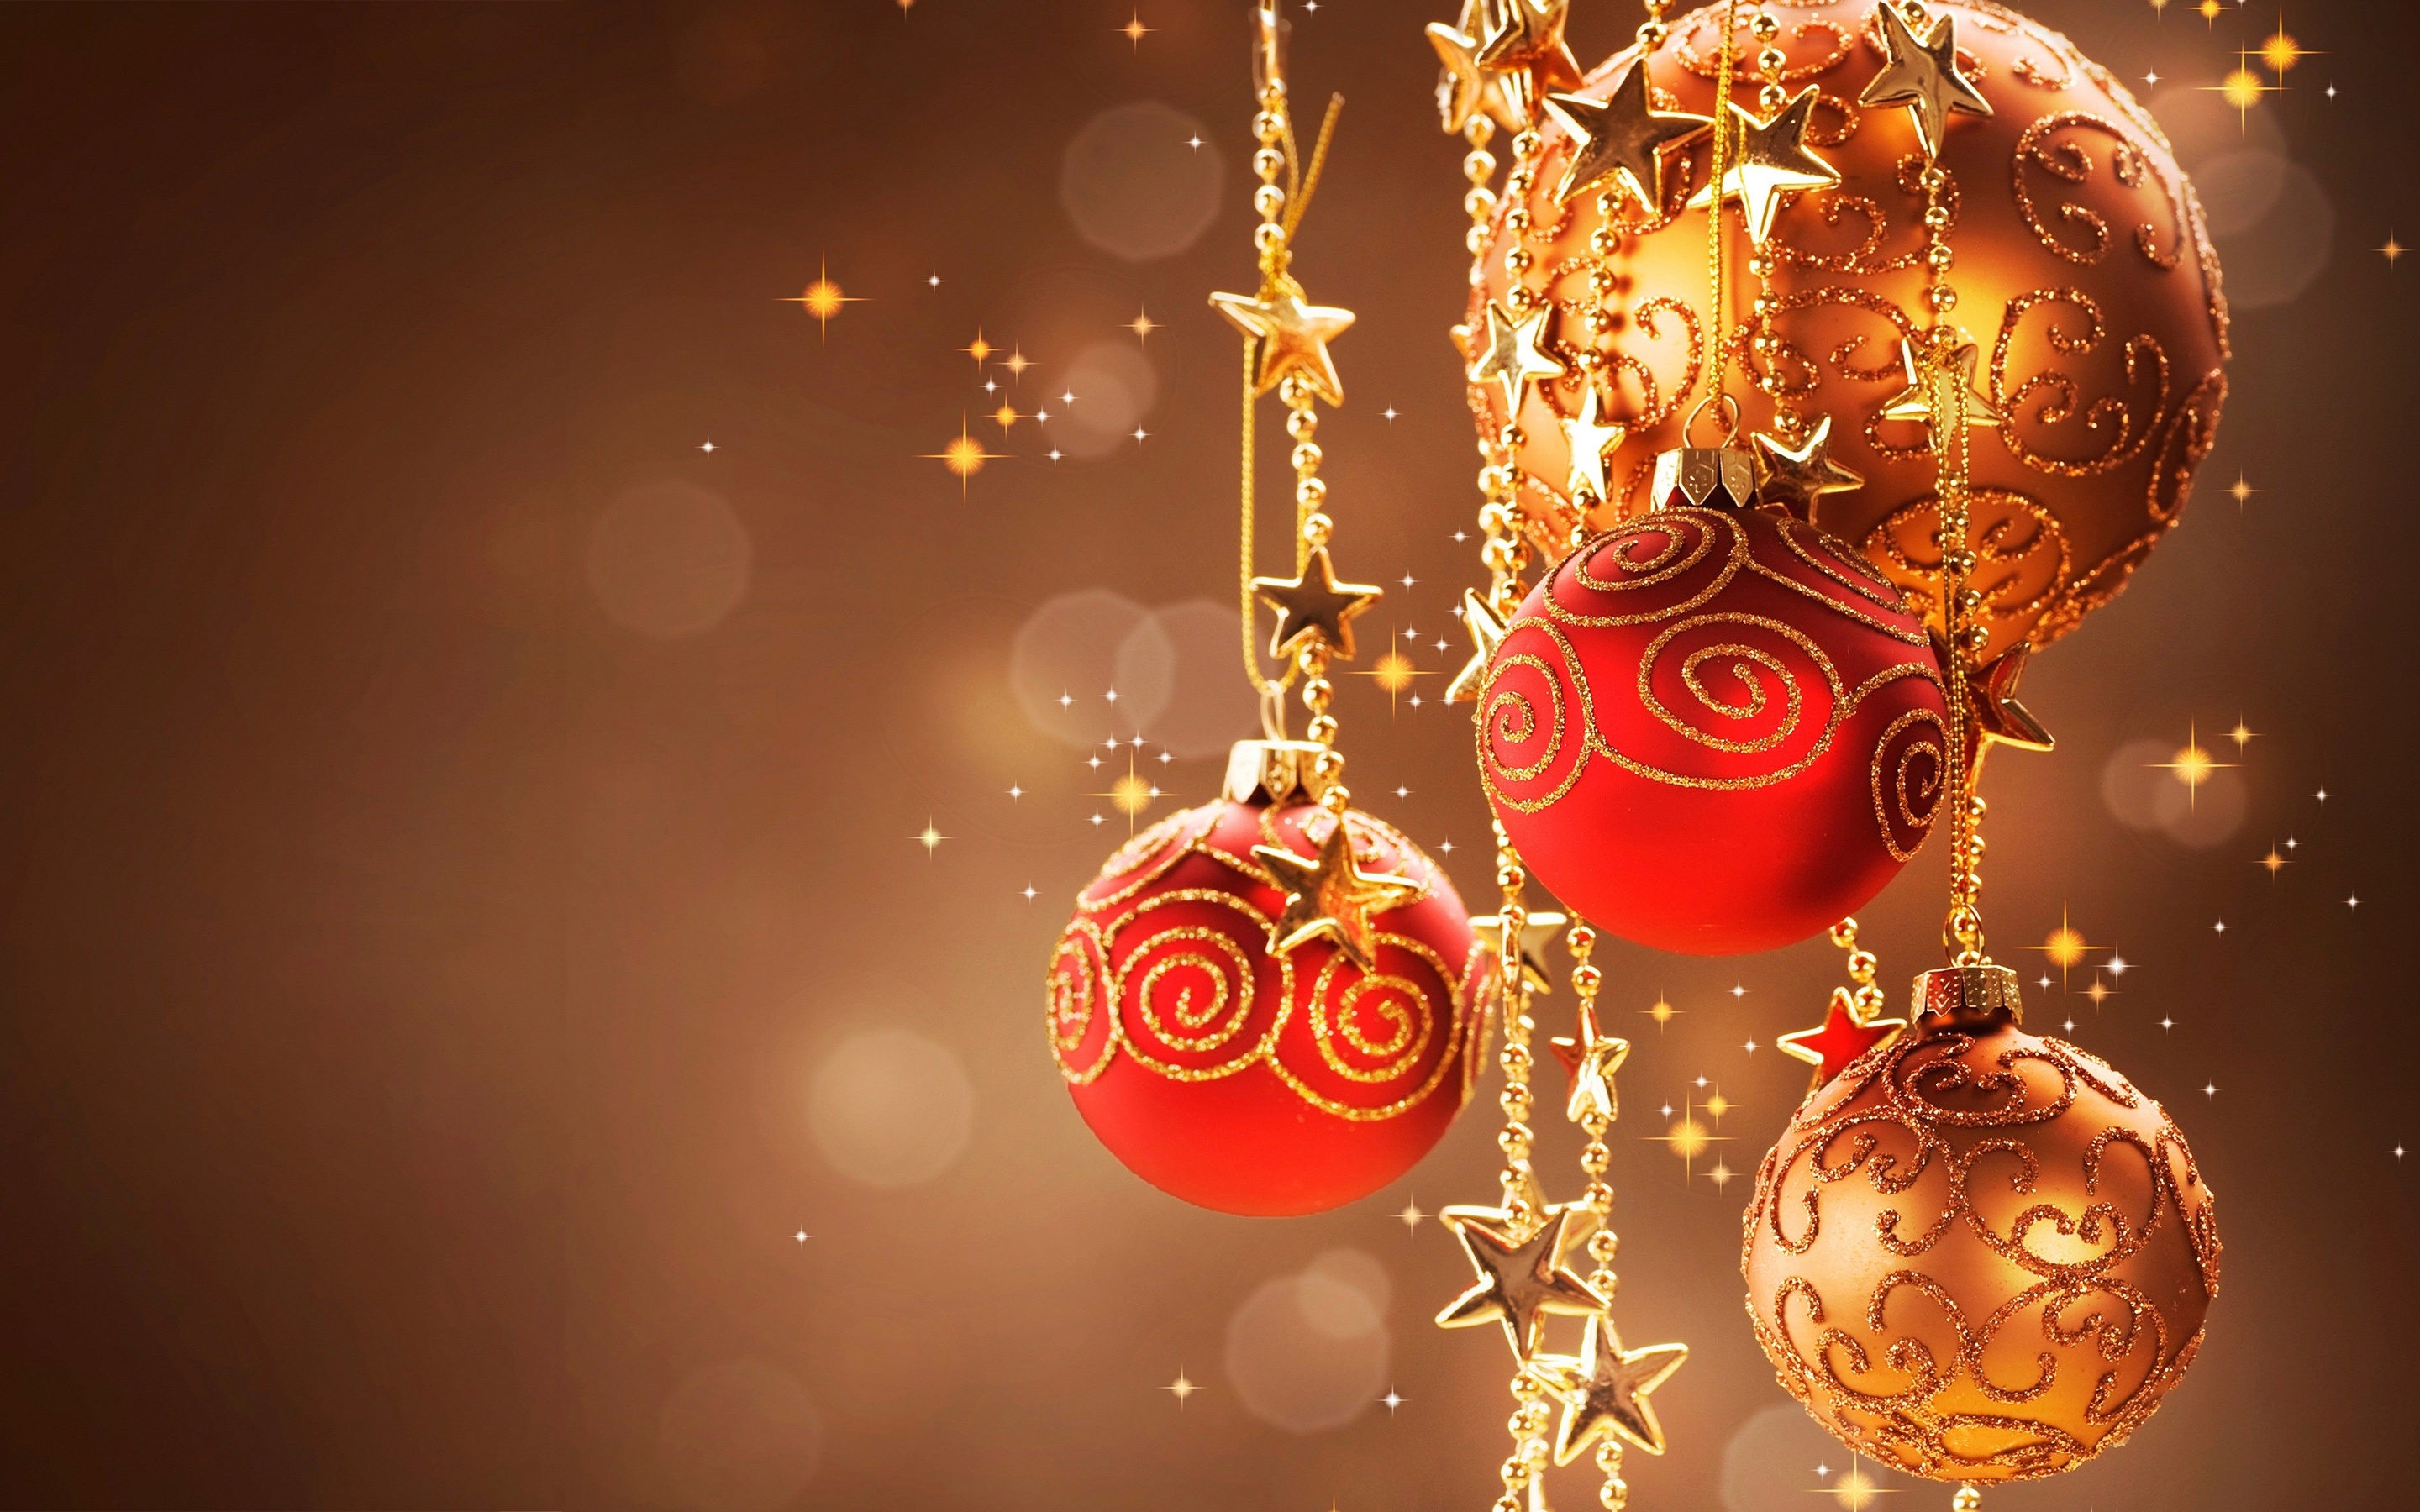 christmas wallpaper 16 - Images For Christmas